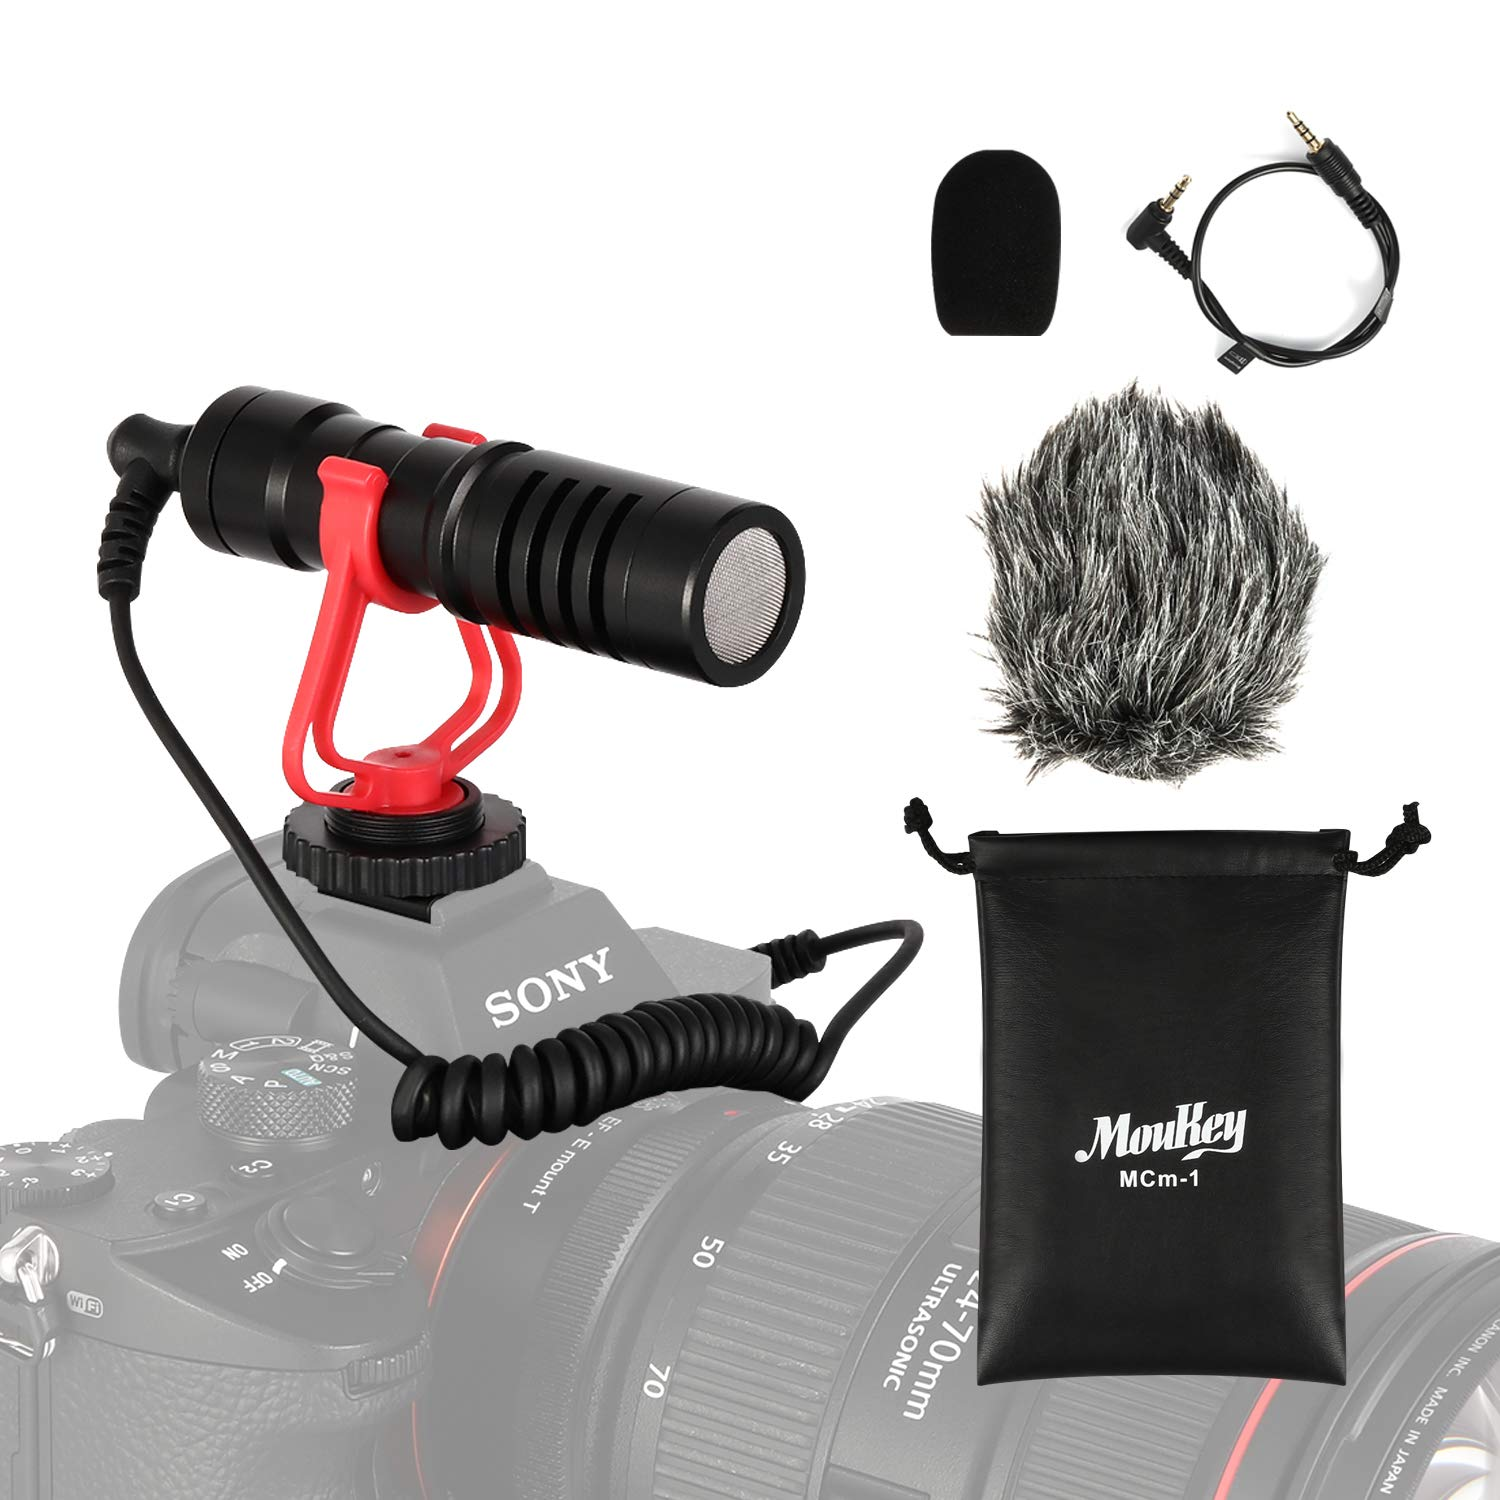 Moukey Microphone External Smartphone Vlogging